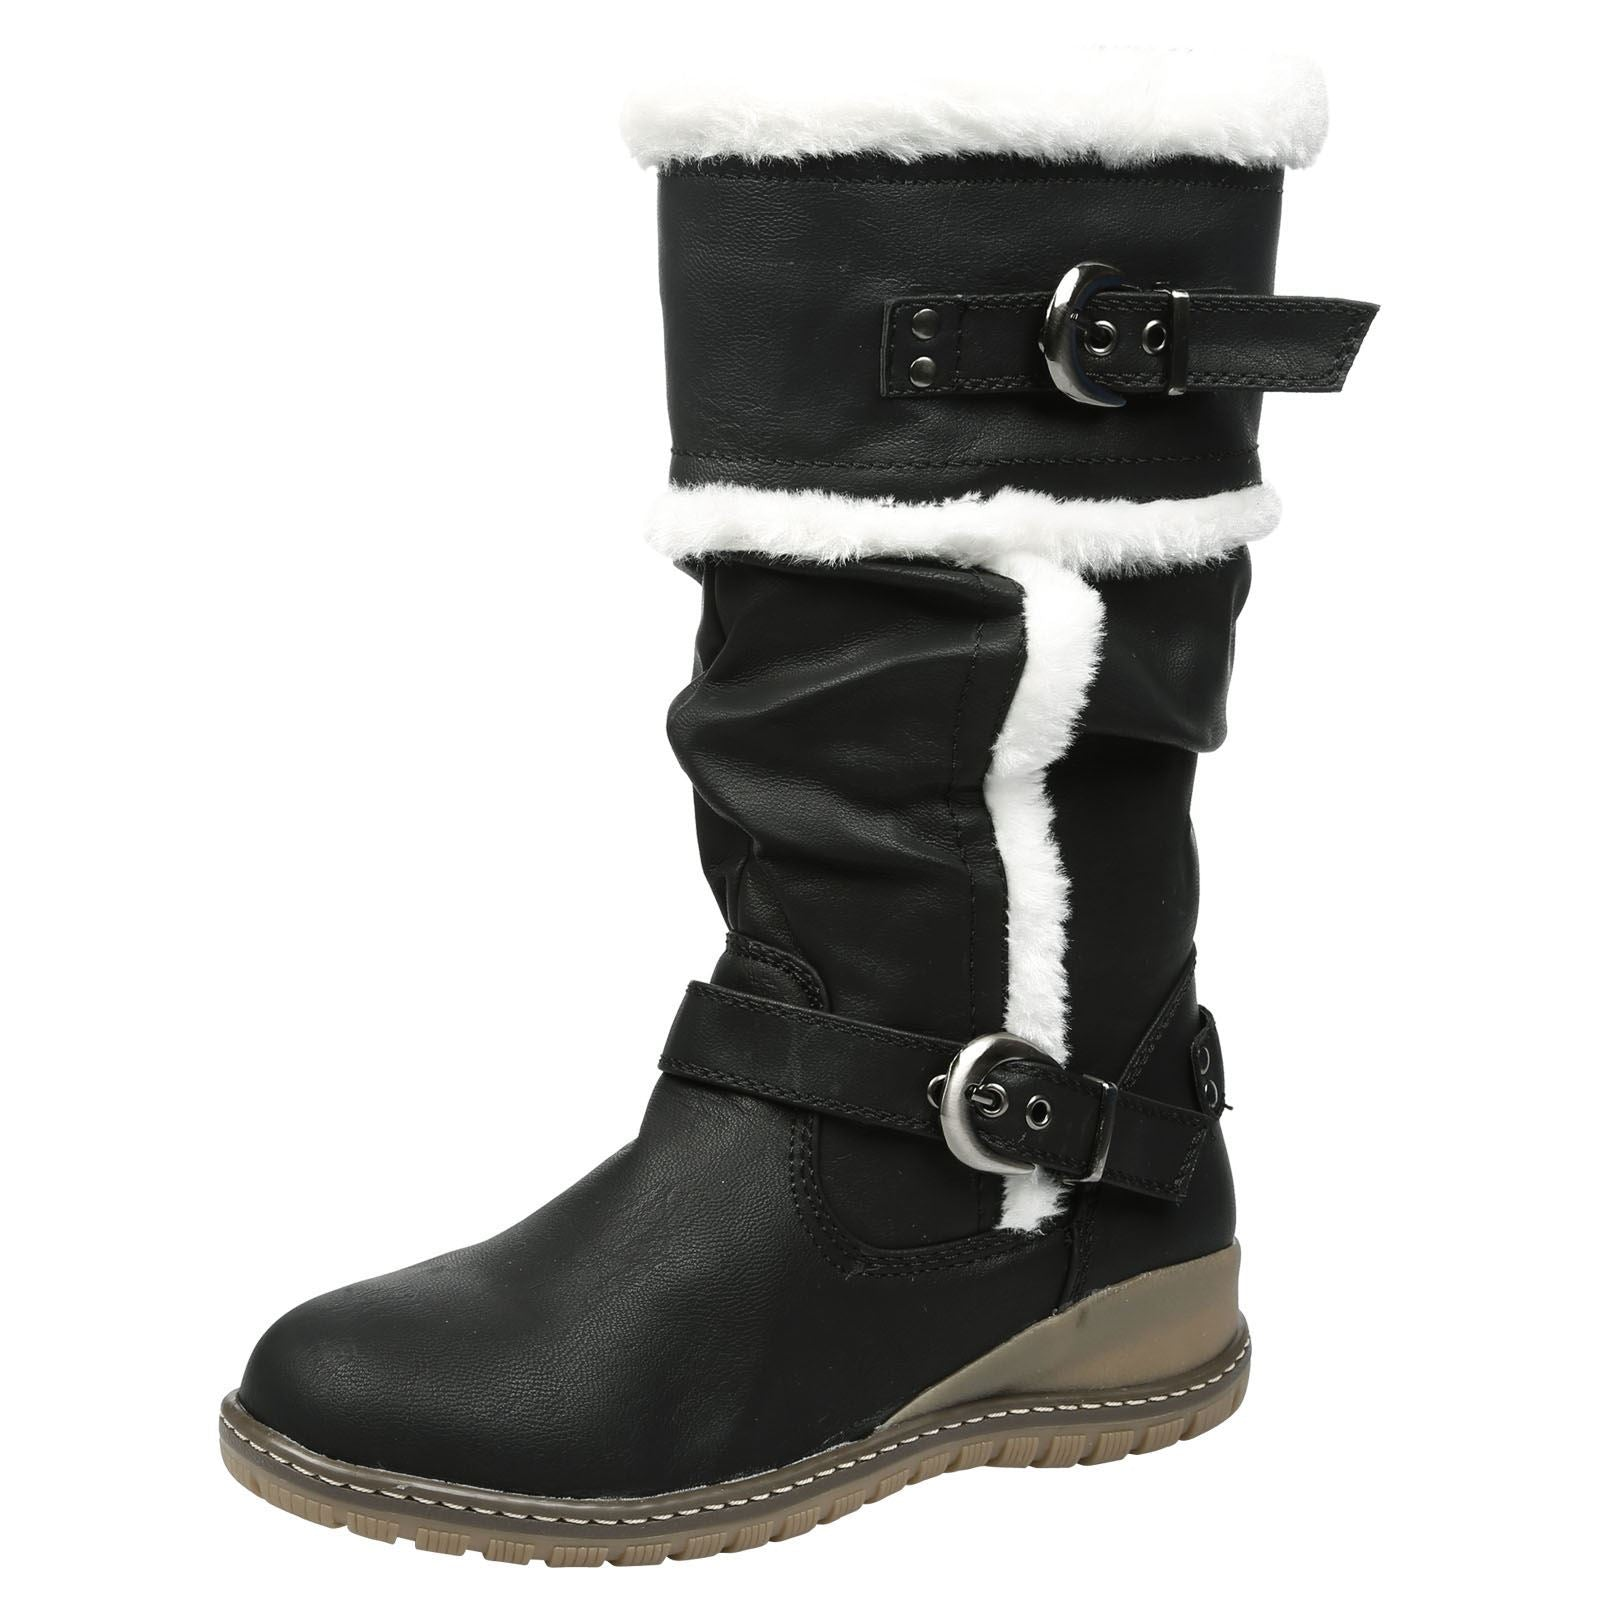 Shania Fur Lined Mid Calf Boots in Black Faux Leather